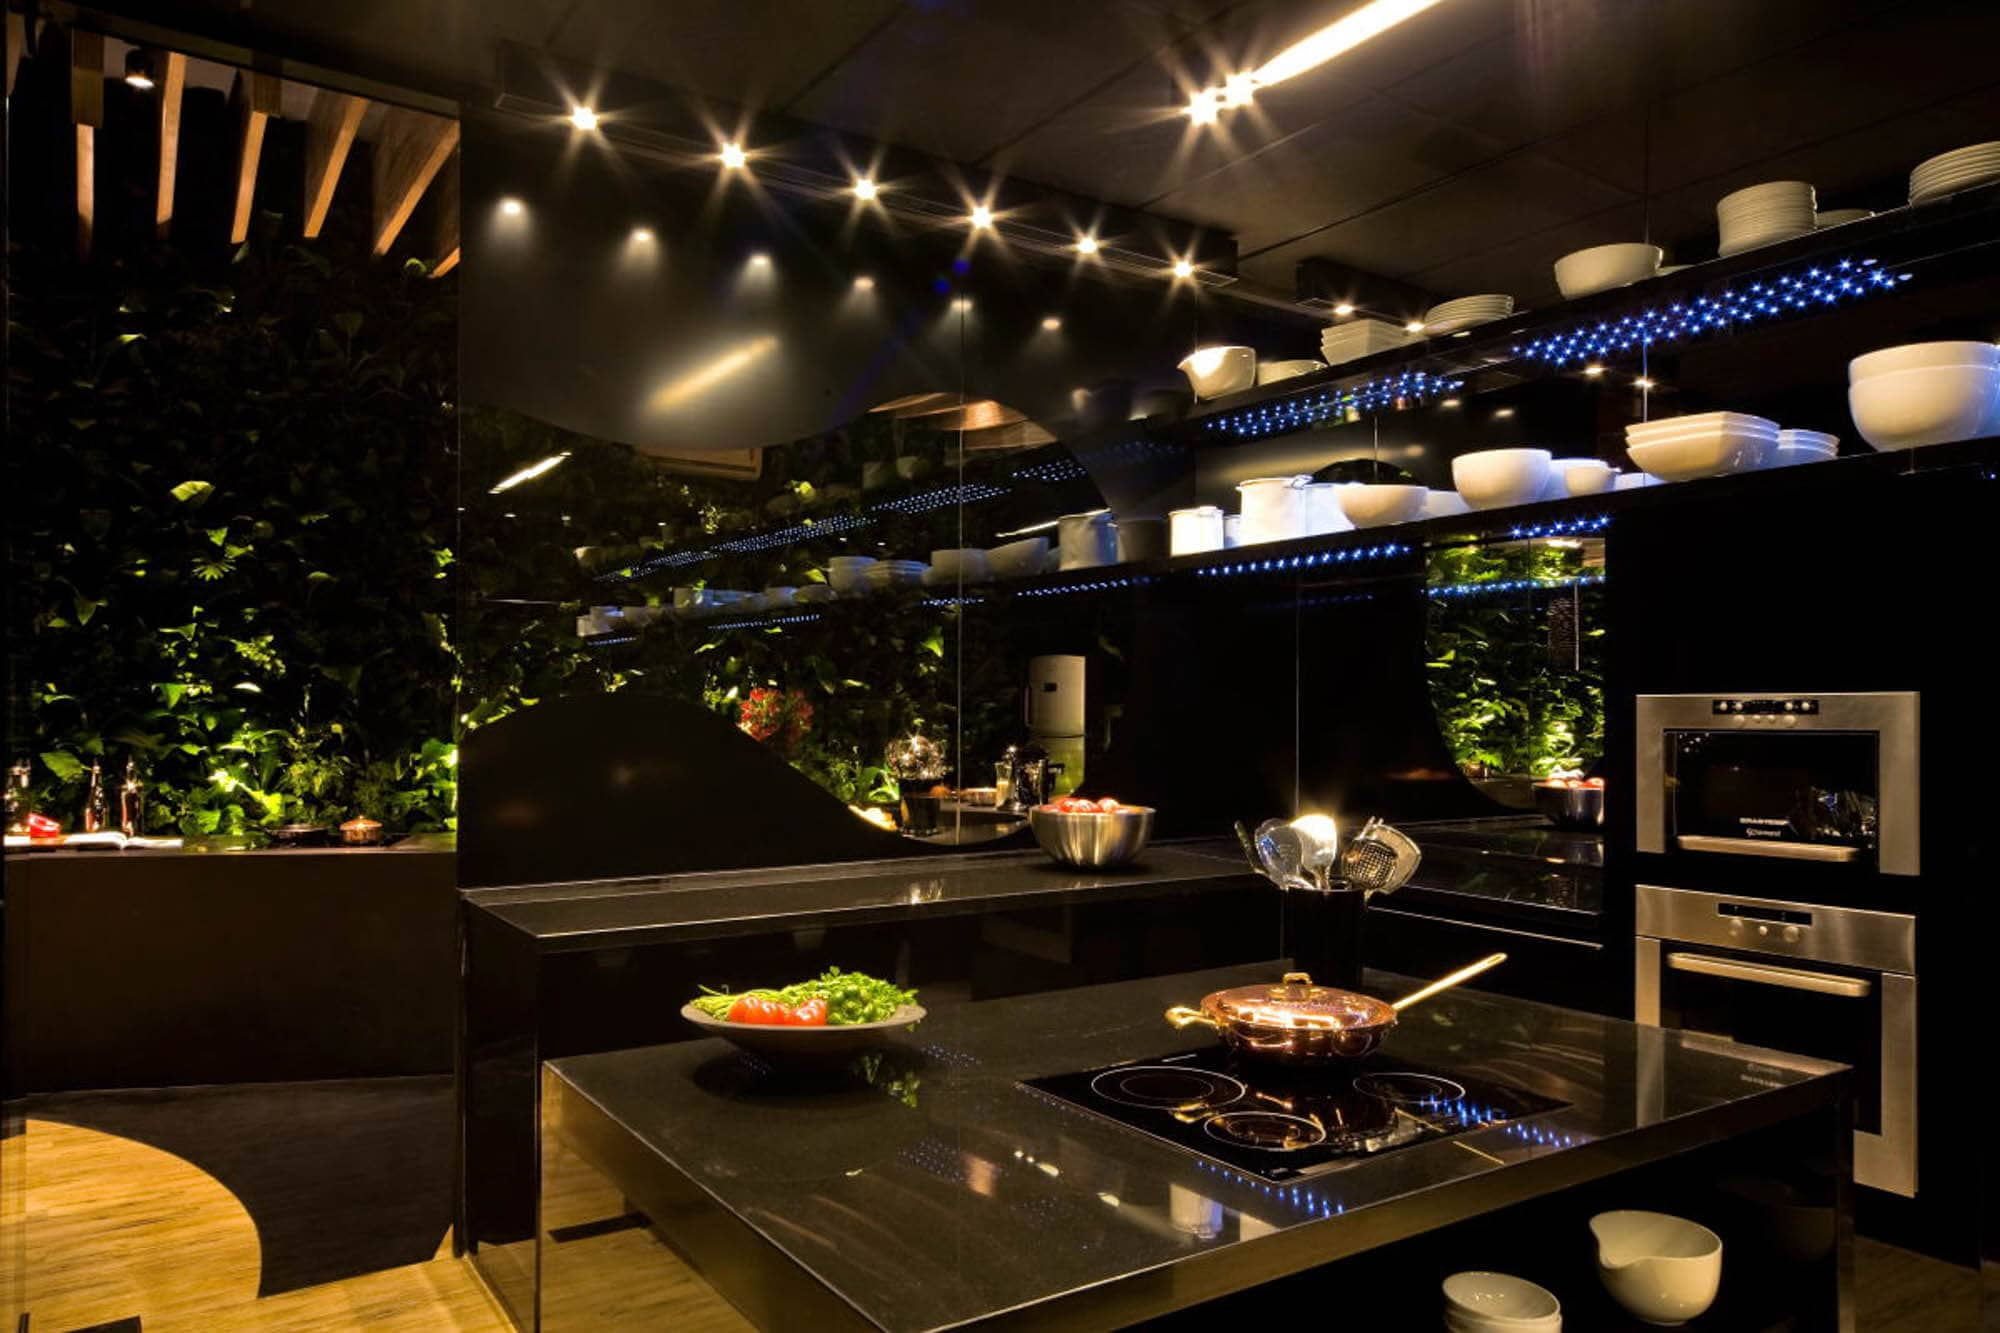 Uncategorized Chef Kitchen Design kitchen design and renovating ideas gentlemans gazette dark designs can be warm elegant with the right light a touch of greenery